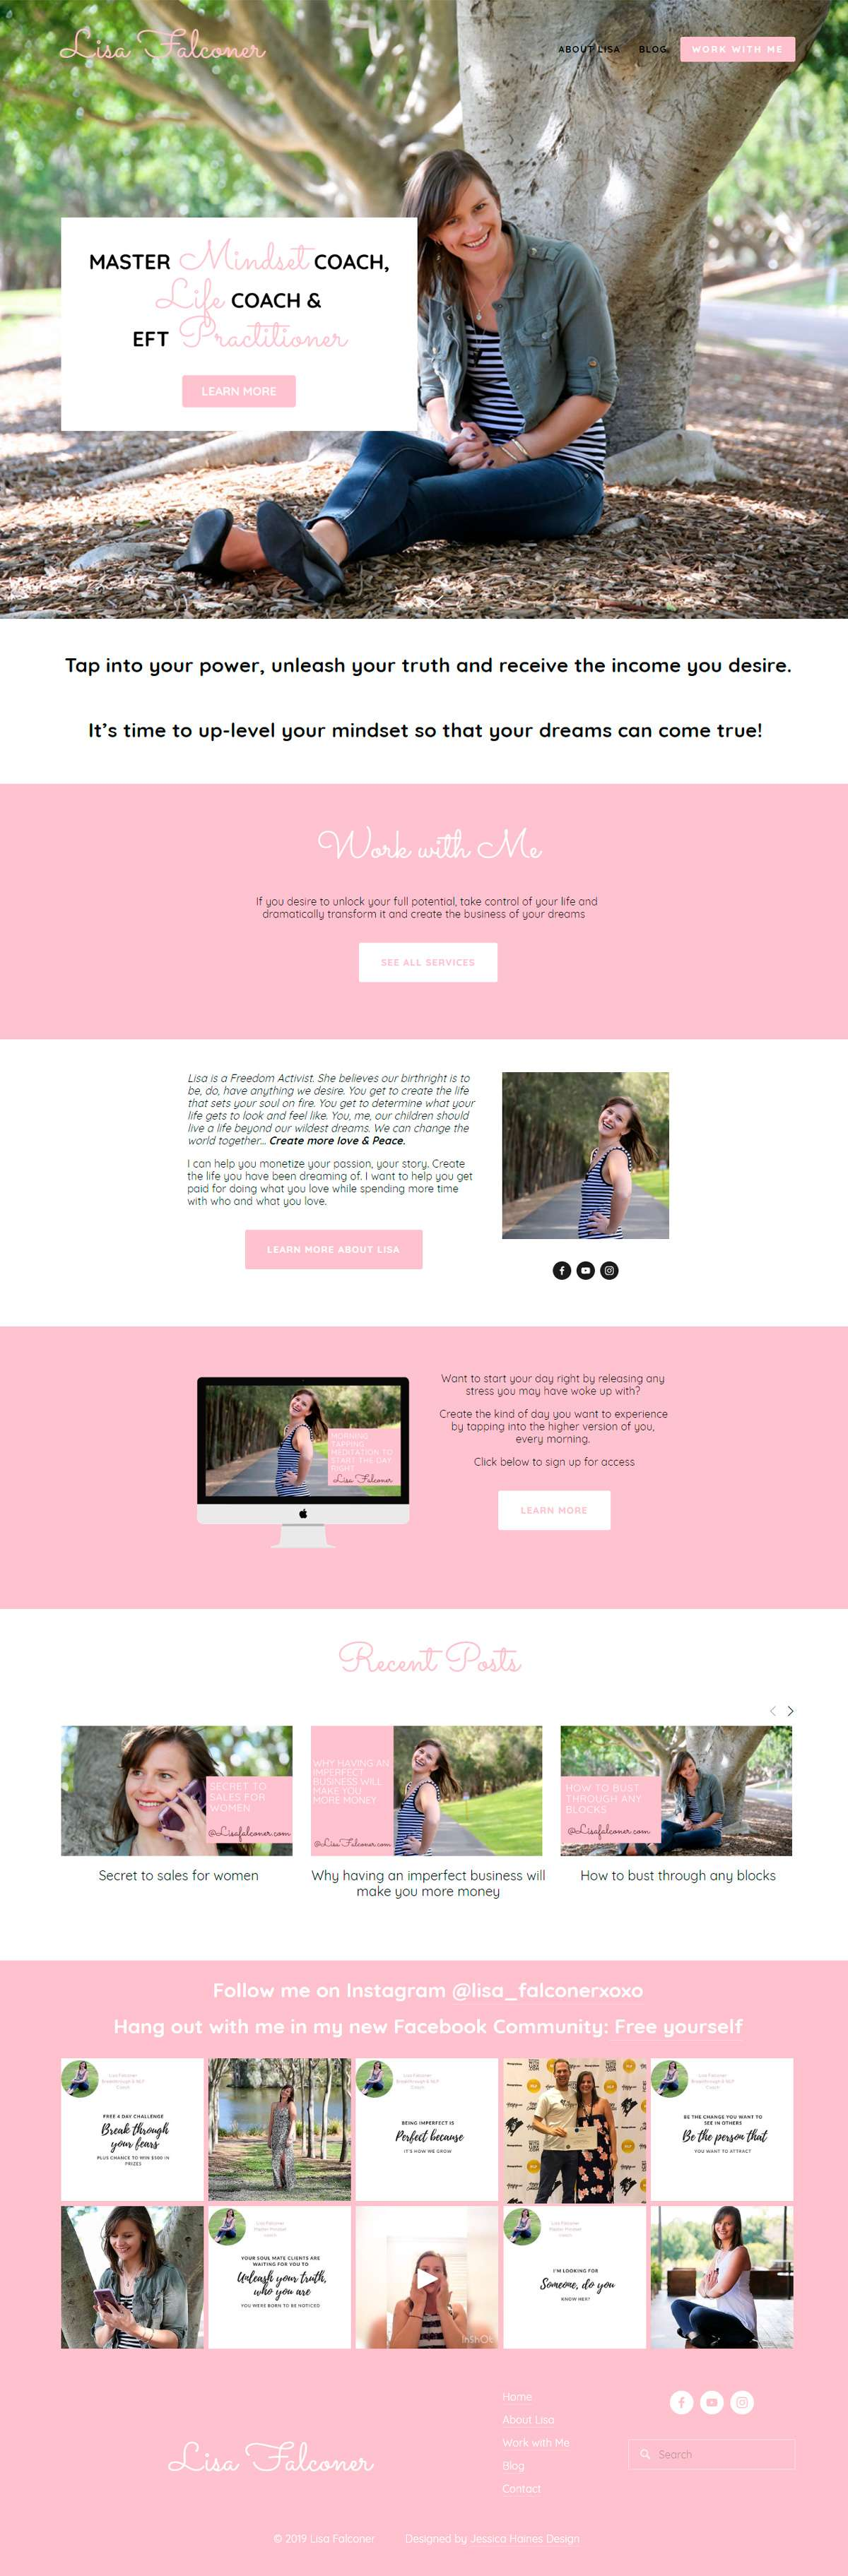 Want to see the best coaching websites in Squarespace? This one is for master mindset coach, life coach and EFT practitioner, Lisa Falconer. Click through for inspiration for your website | www.jessicahainesdesign.com